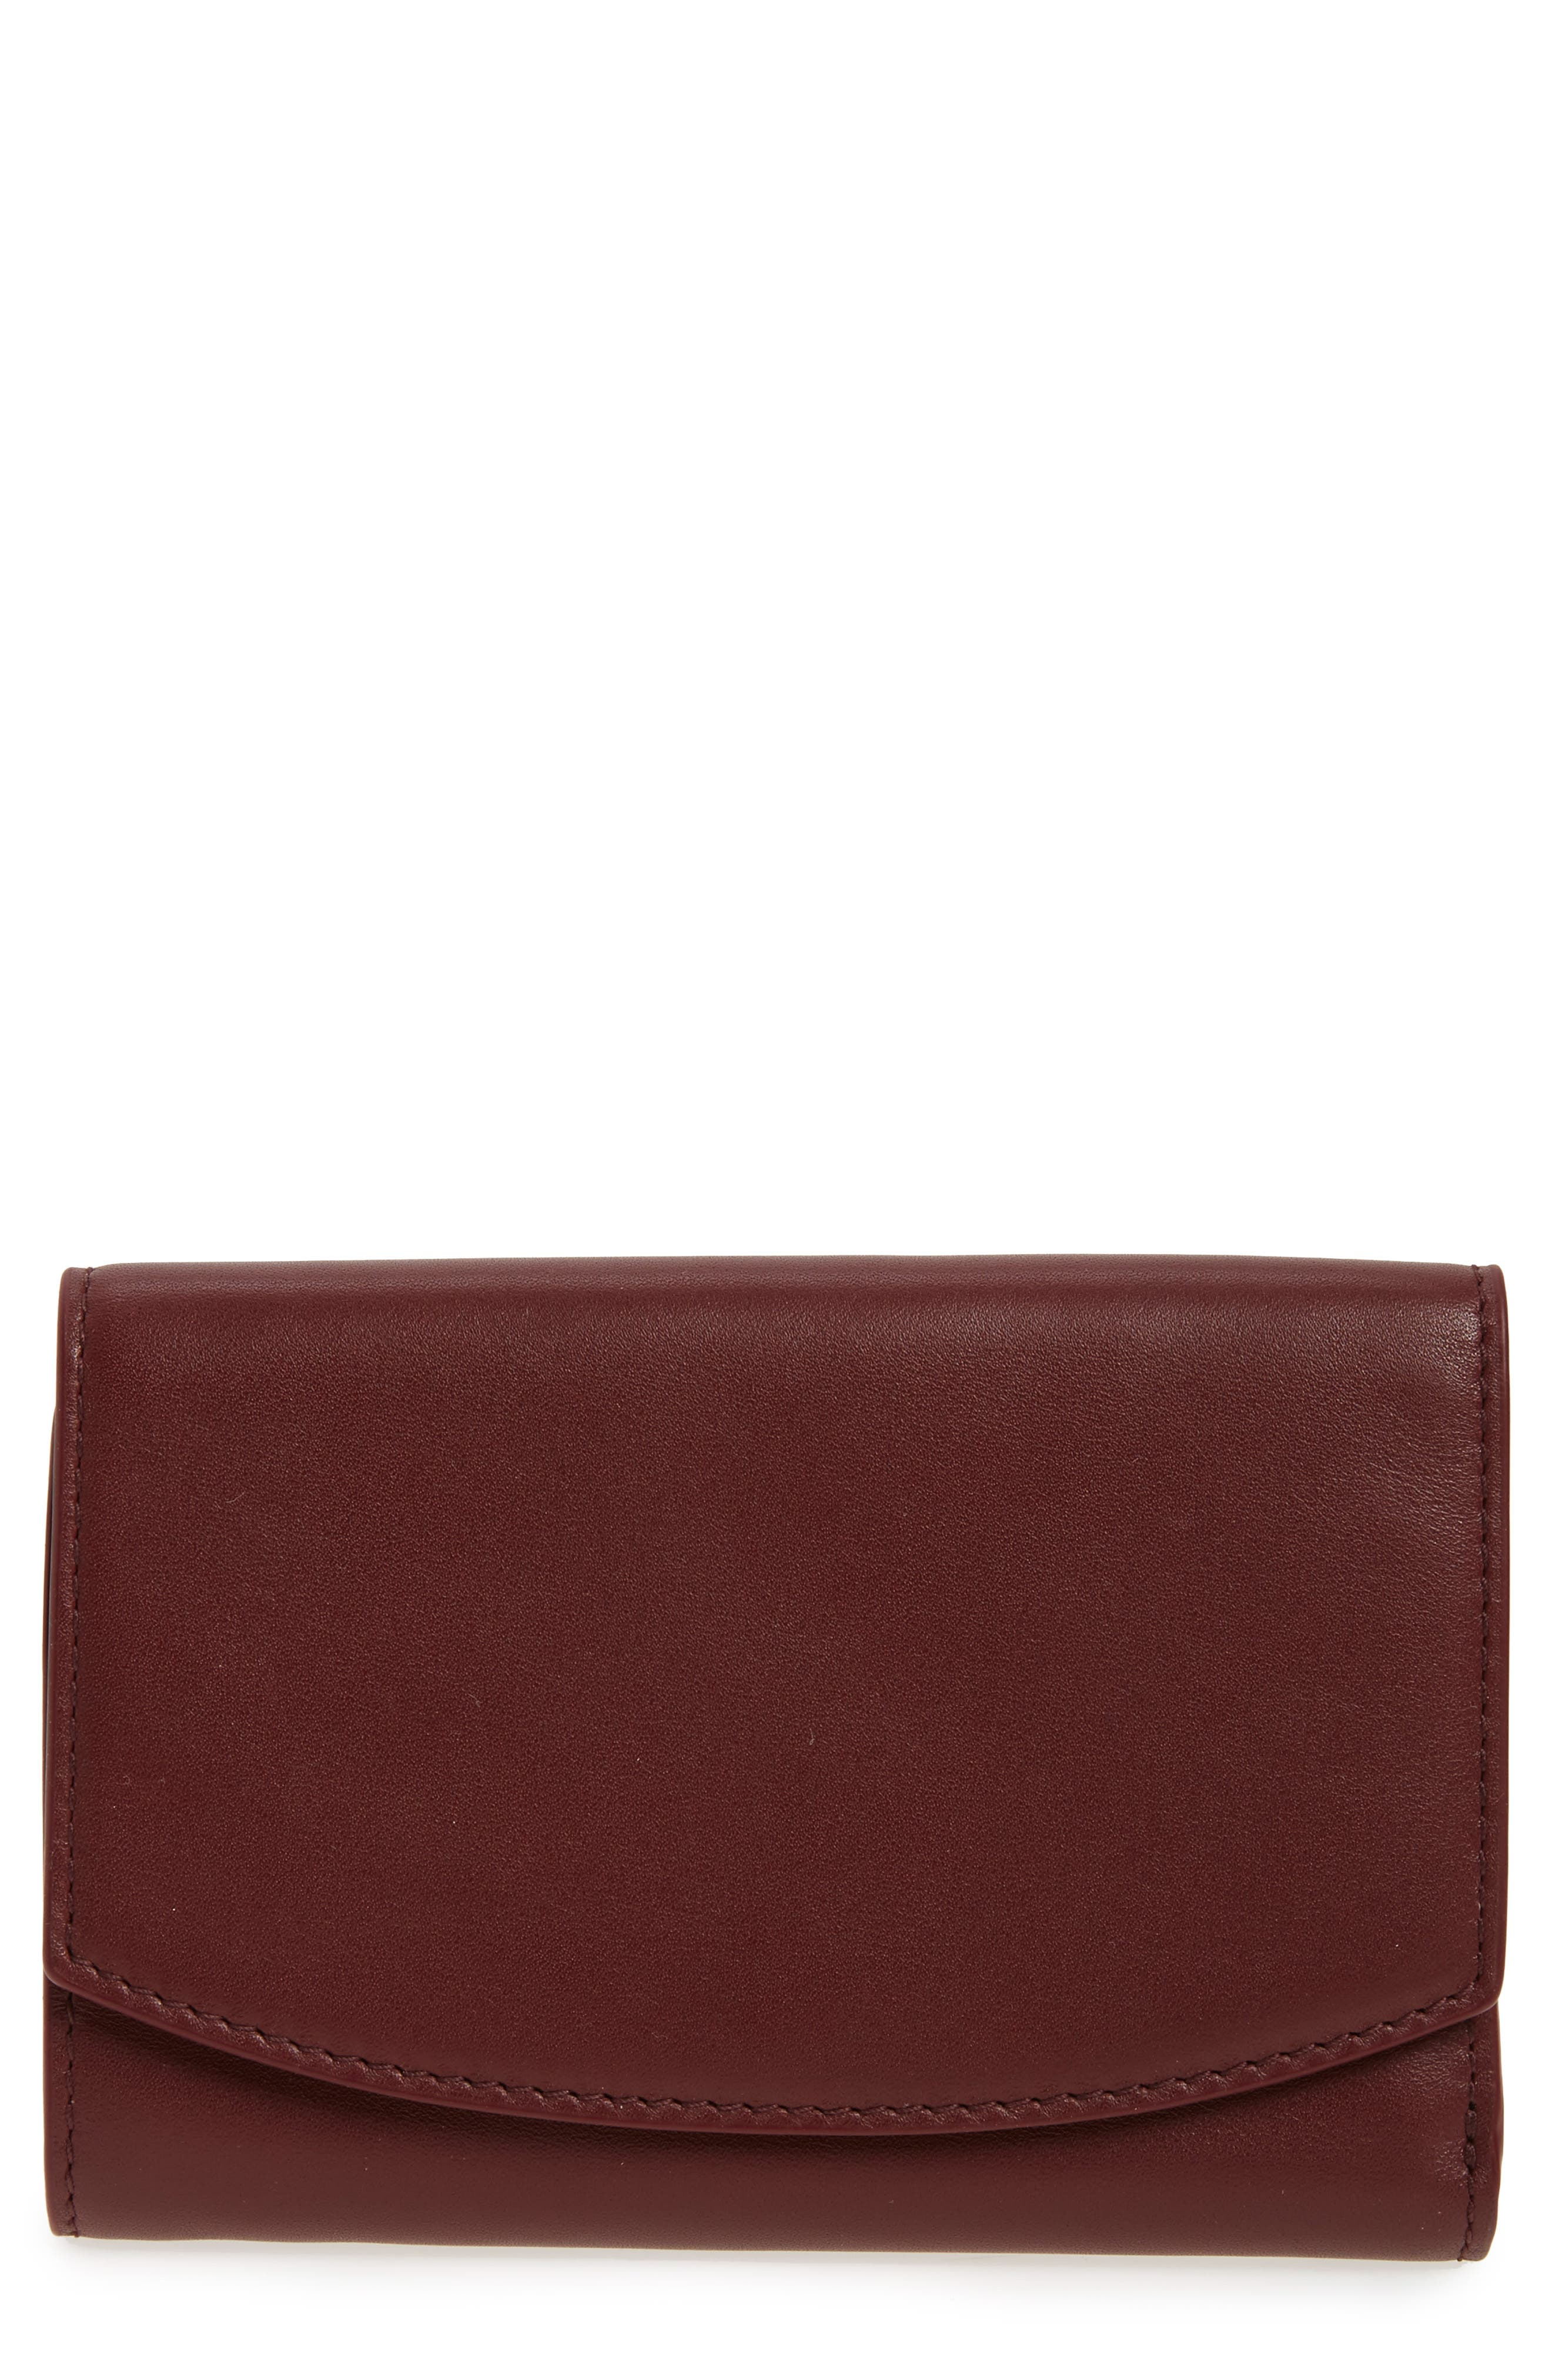 Main Image - Skagen Compact Flap Leather Wallet